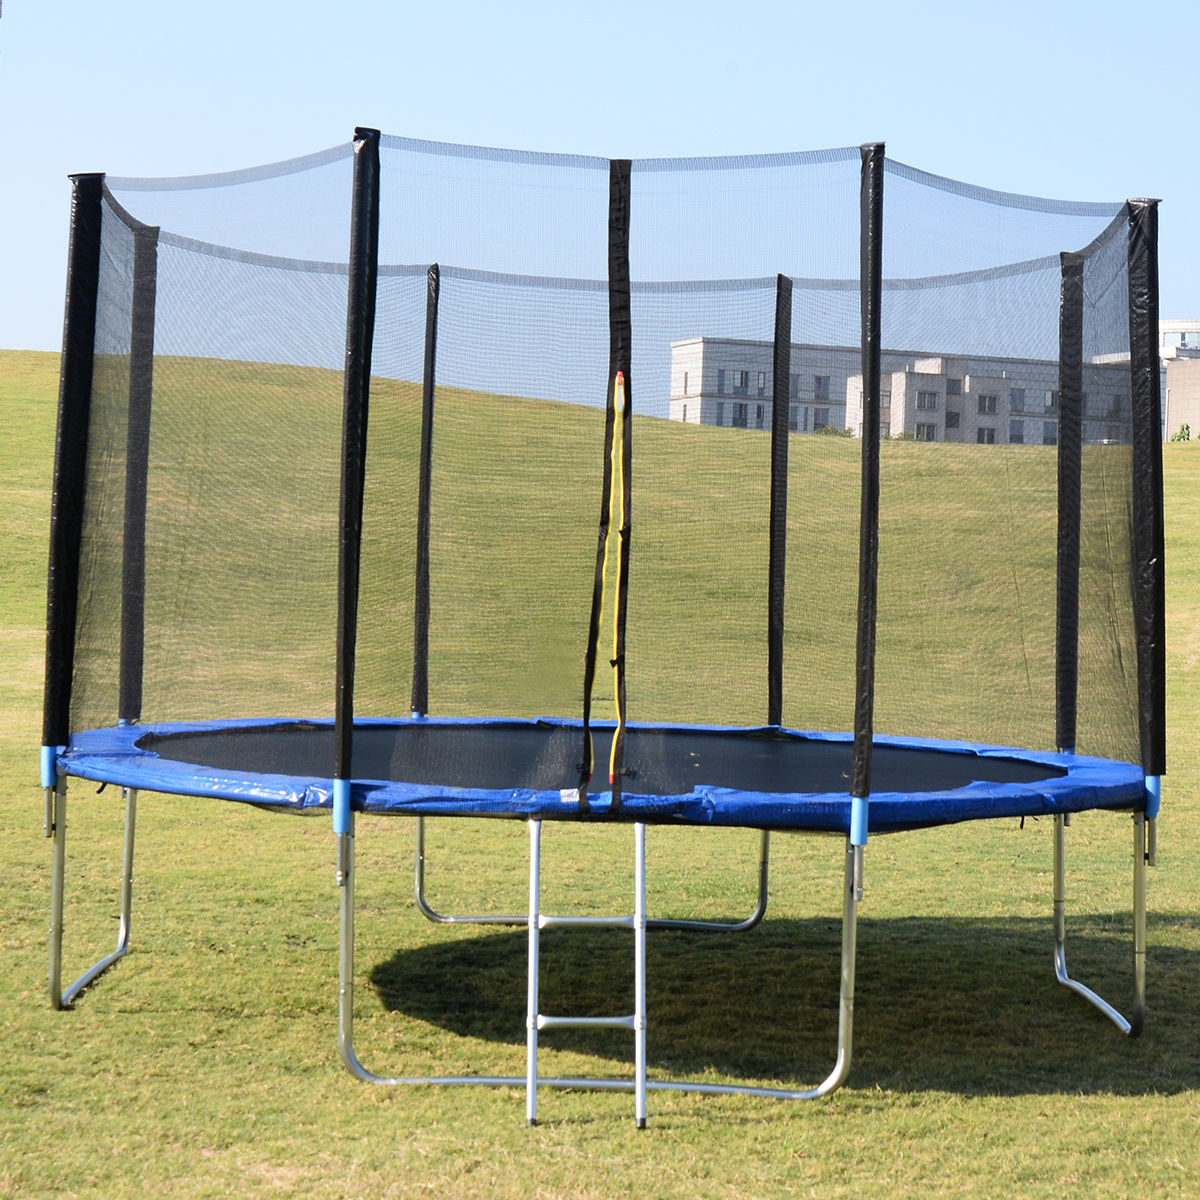 New Heavy Duty Trampoline 14 Ft With Ladder Safety Net Tramp